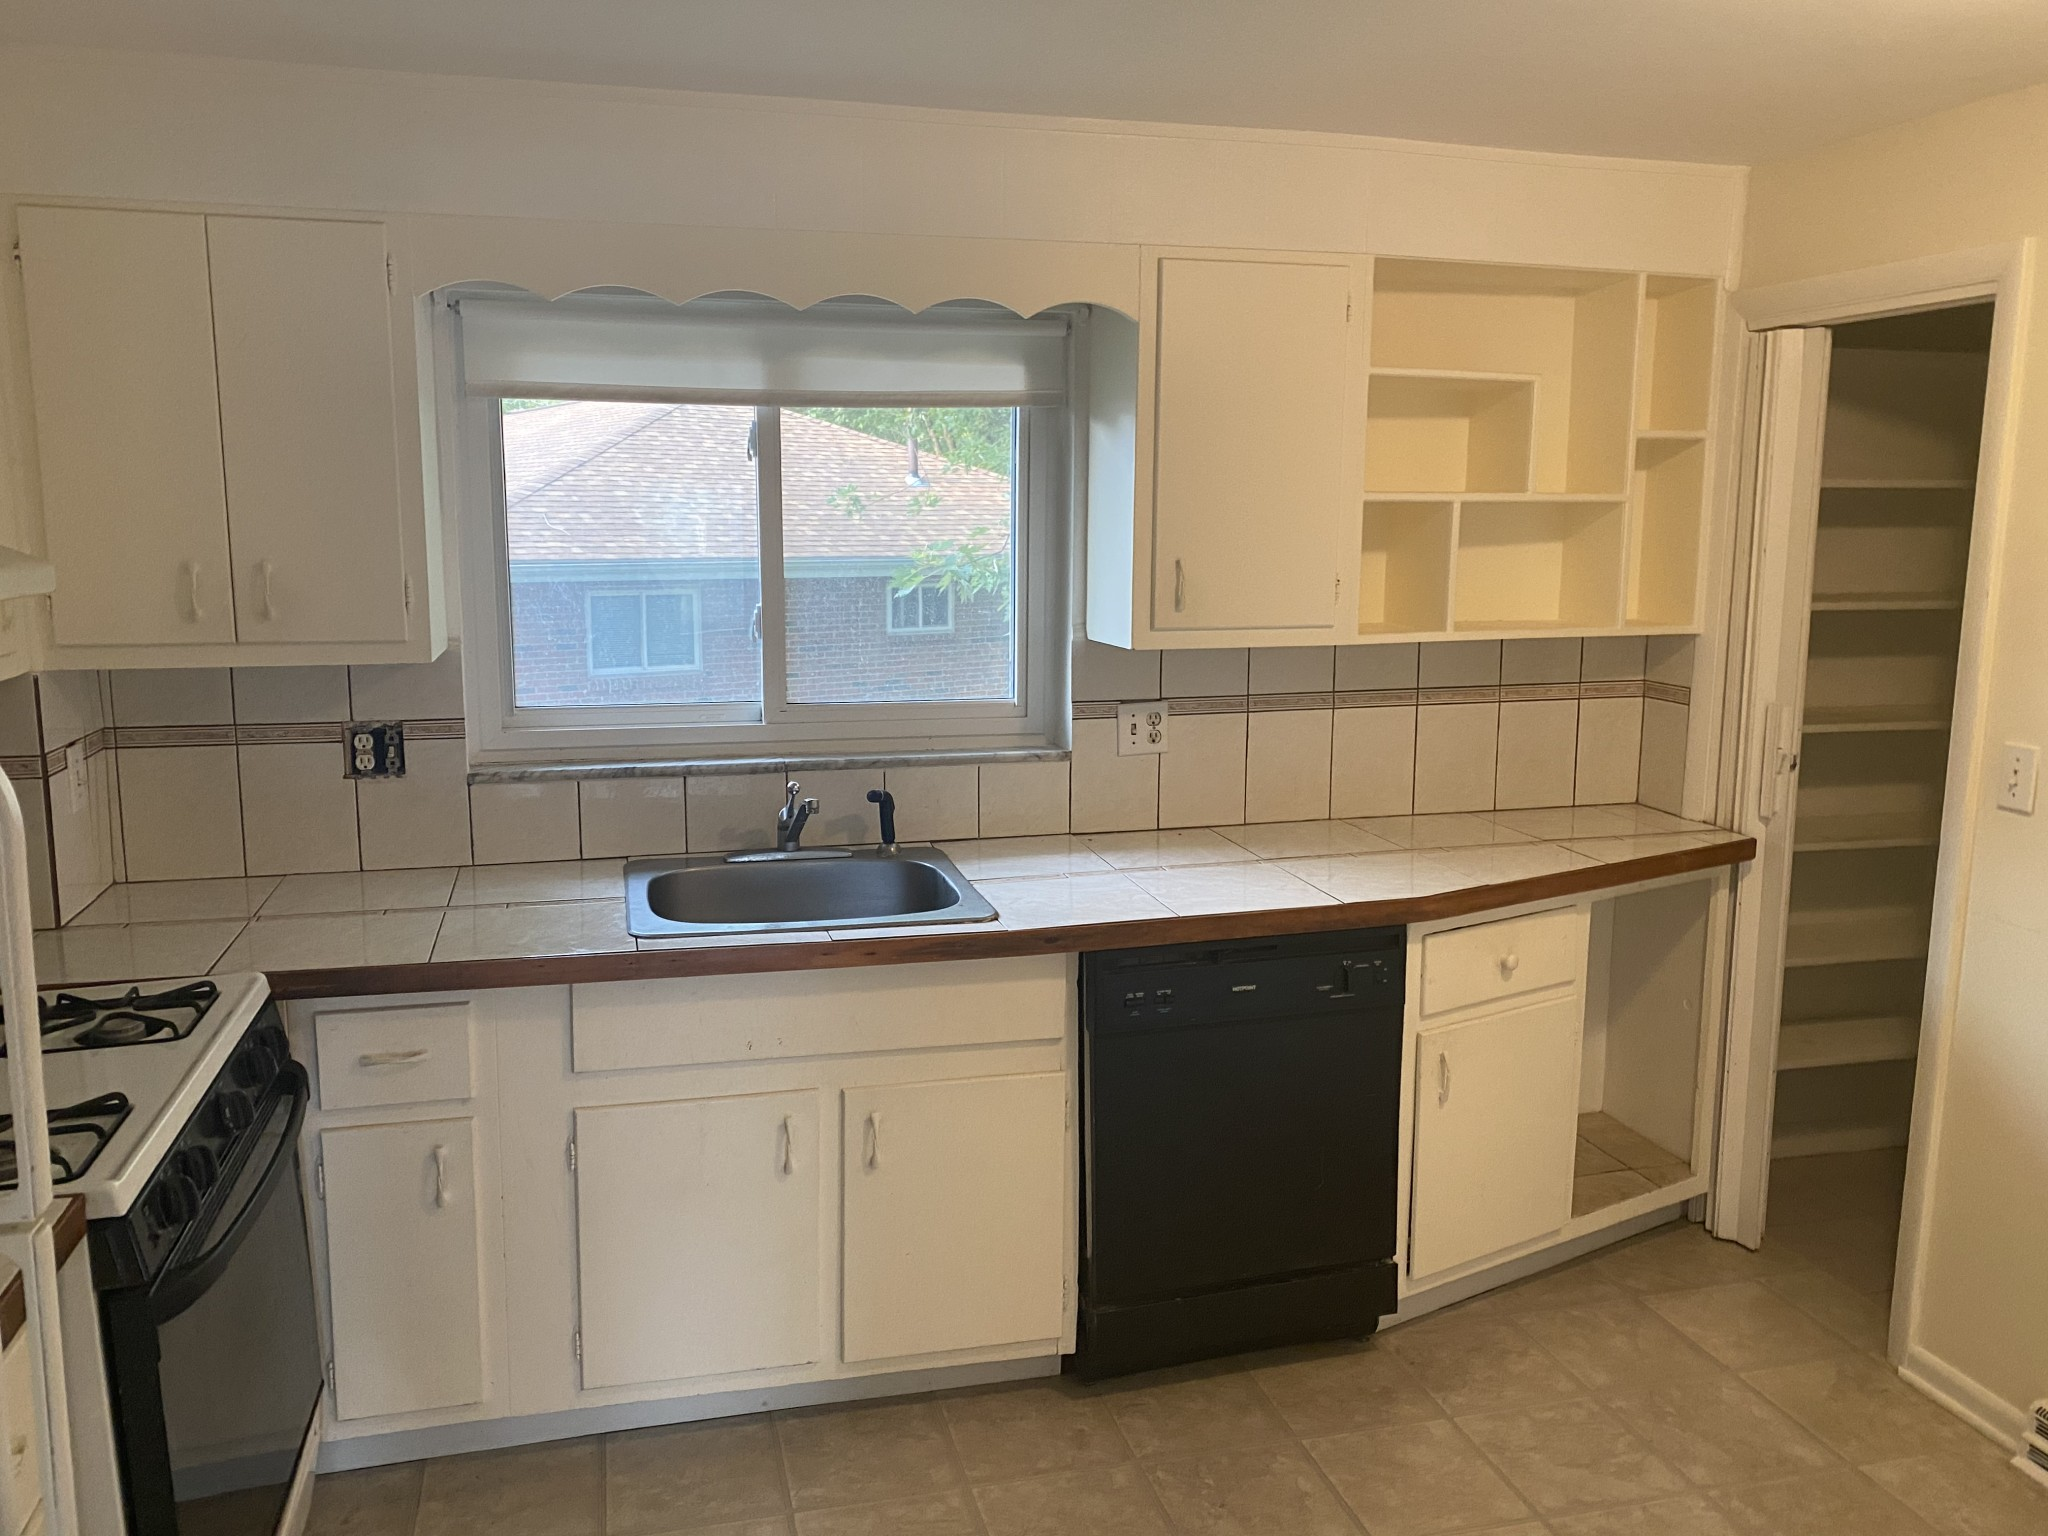 2 Beds, 1 Bath apartment in Belmont for $1,995